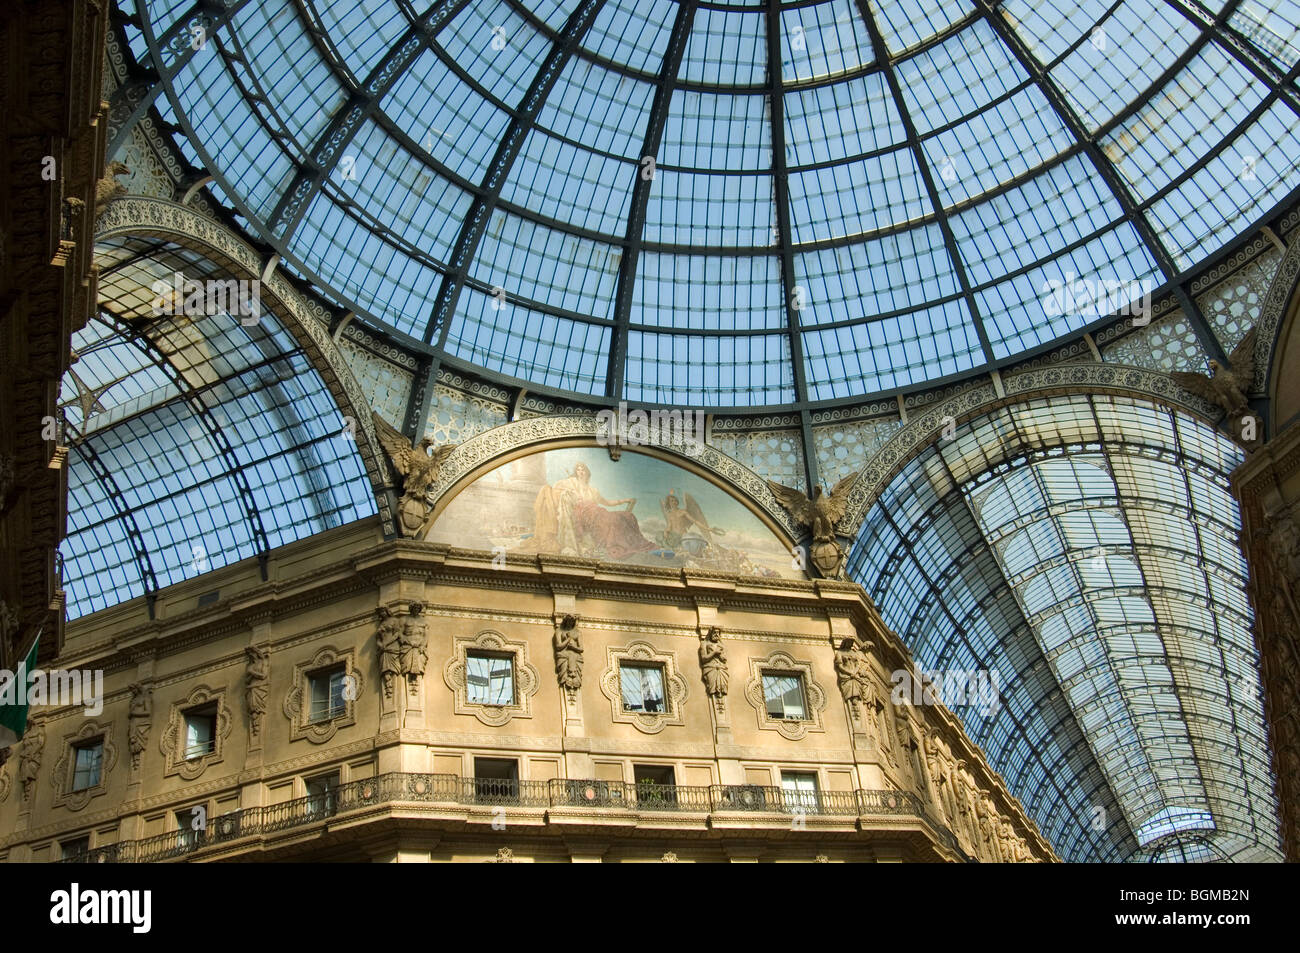 the glass roof of the galleria in piazza duomo milan stock. Black Bedroom Furniture Sets. Home Design Ideas